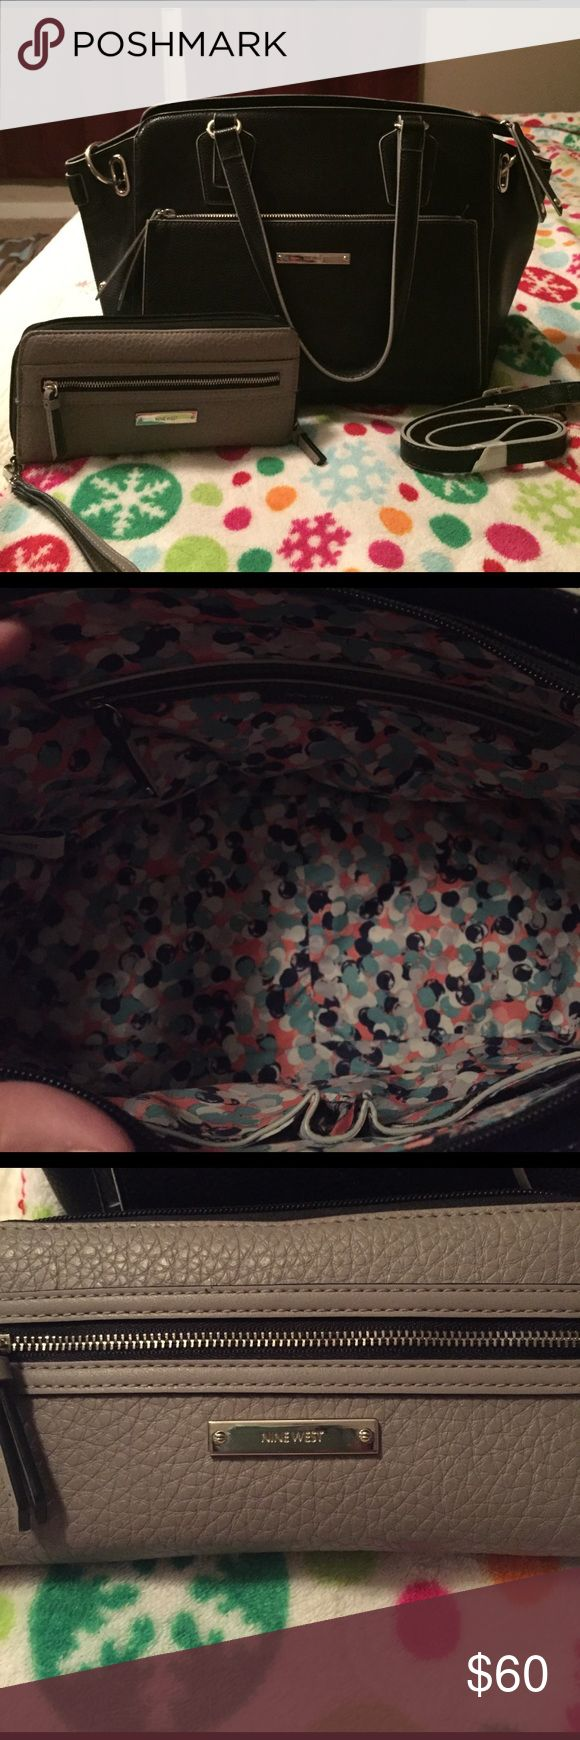 Nine West purse & wallet Beautiful Nine West purse in great condition. Comes with long handle. Nine West Wallet with wrist handle. Both in great condition! Nine West Bags Shoulder Bags